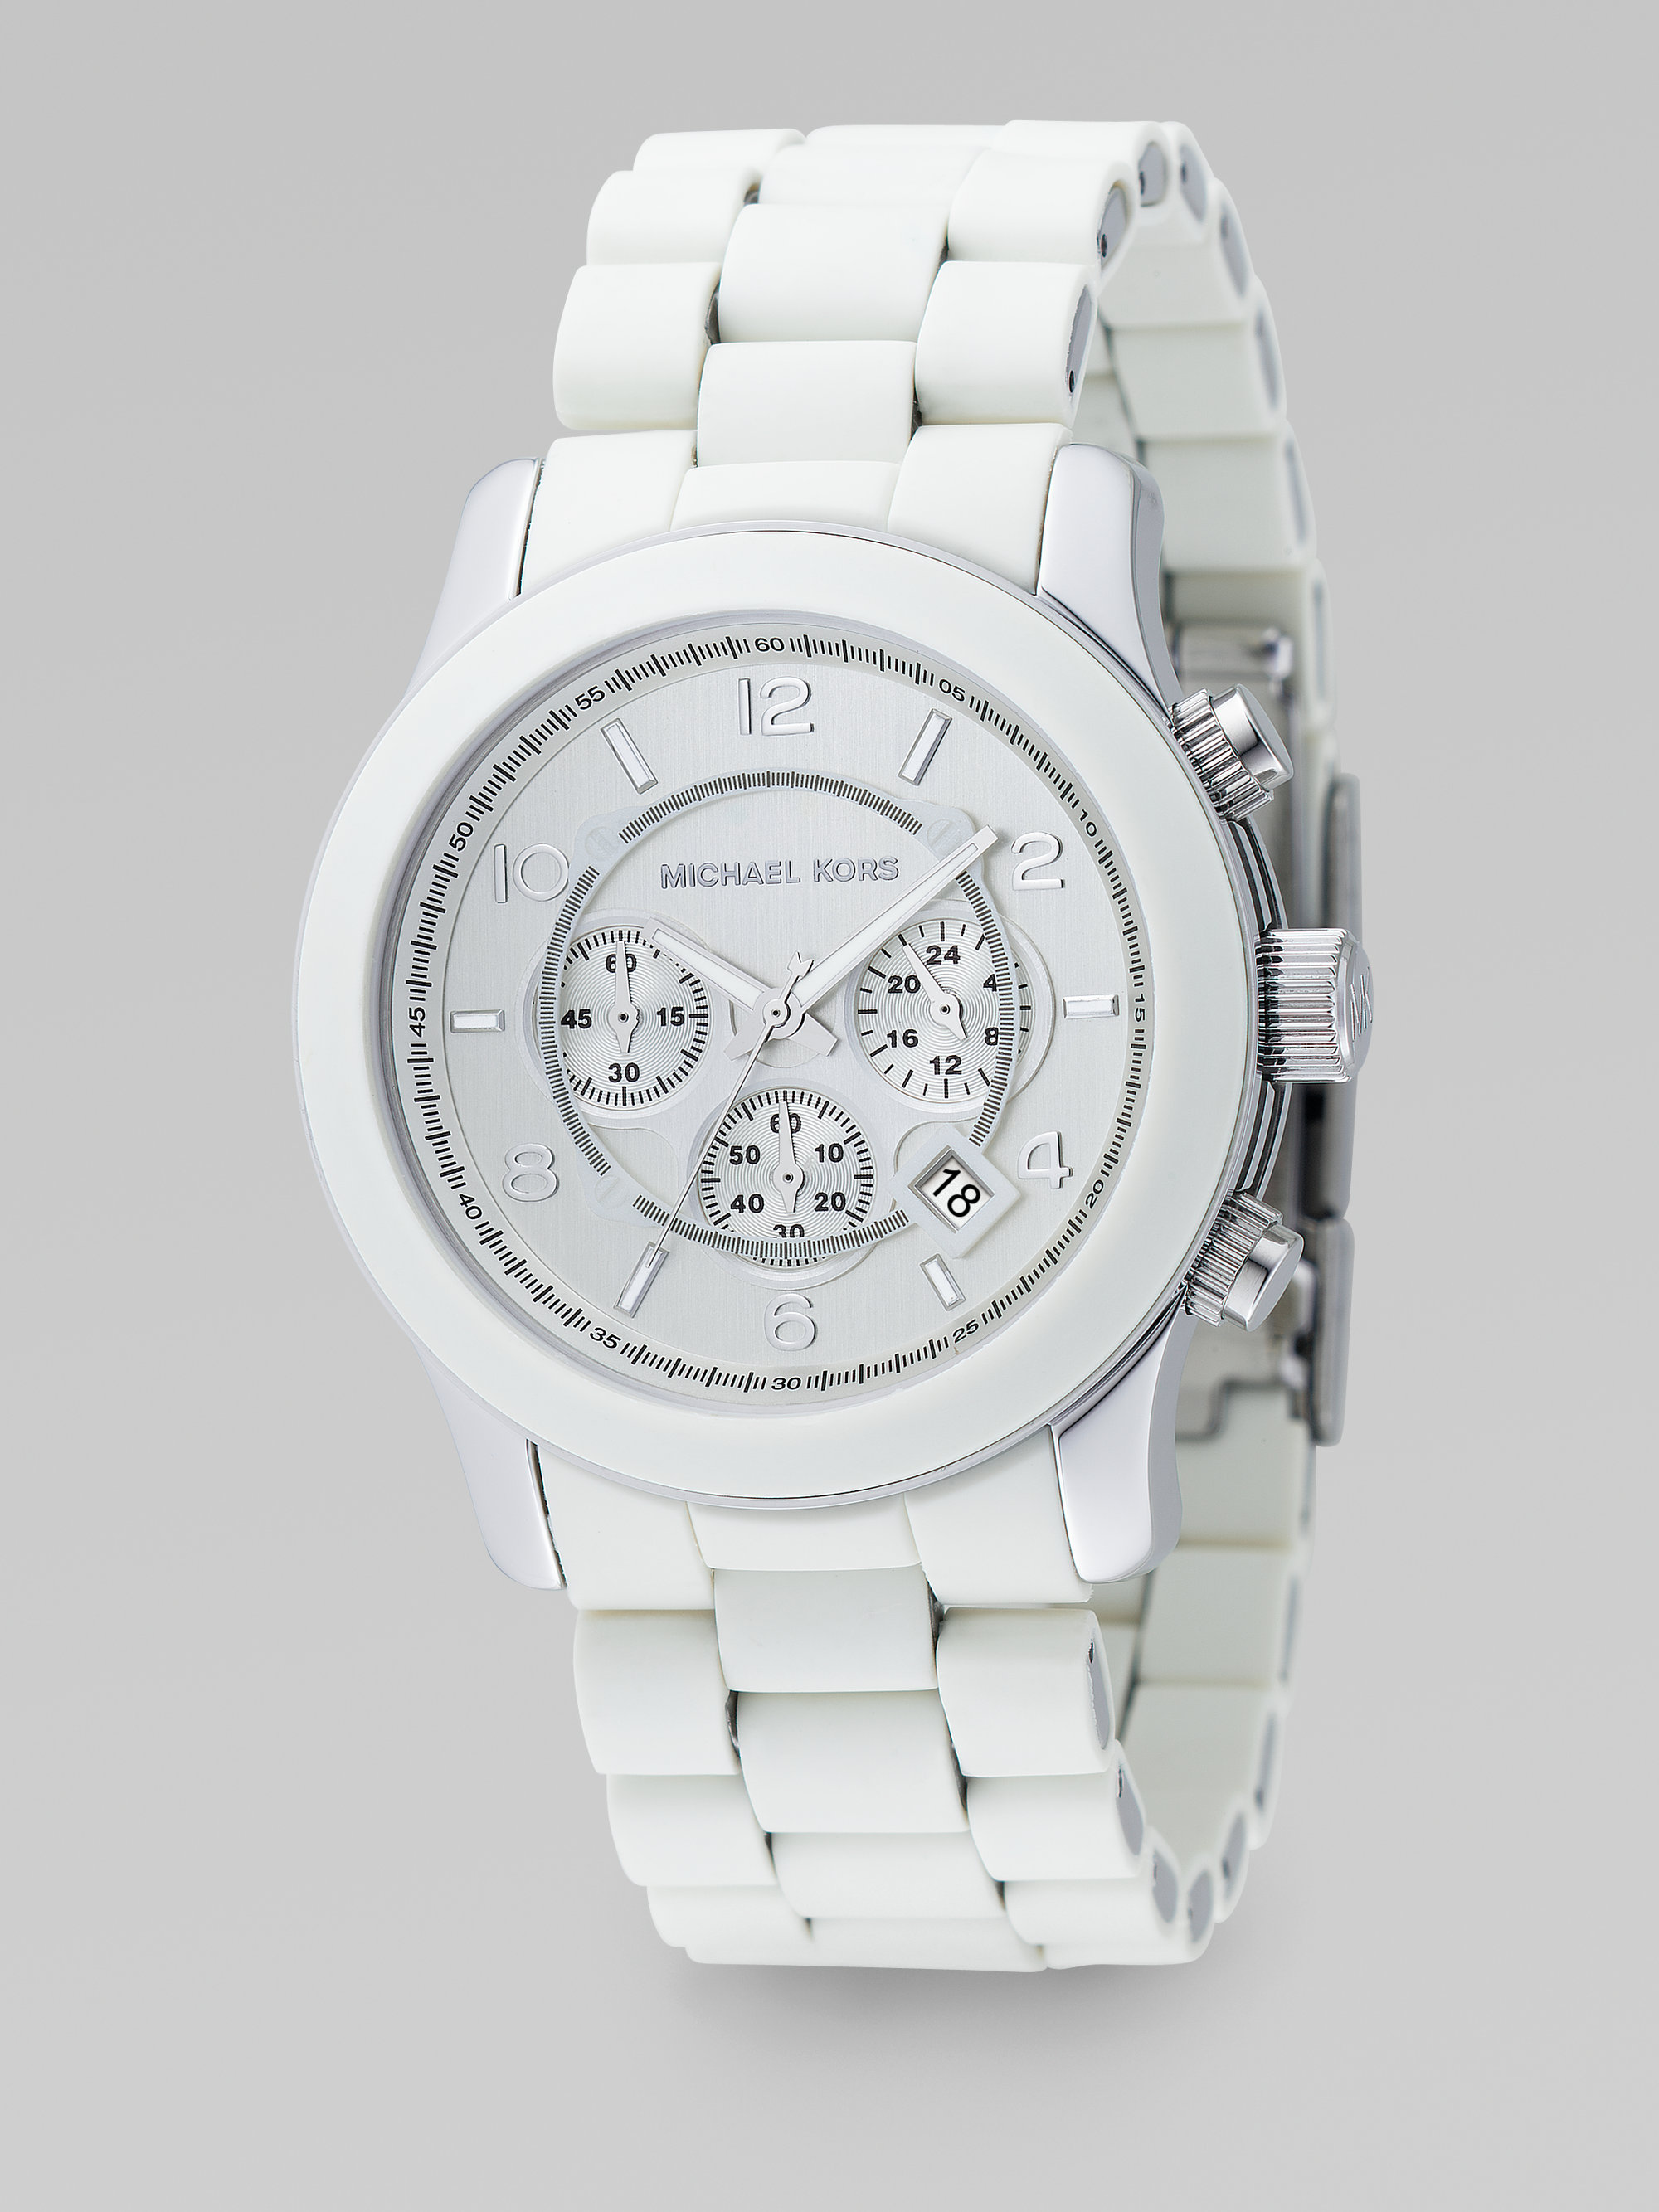 men titan watches watch price buy for at india product chronograph white octane online best dial